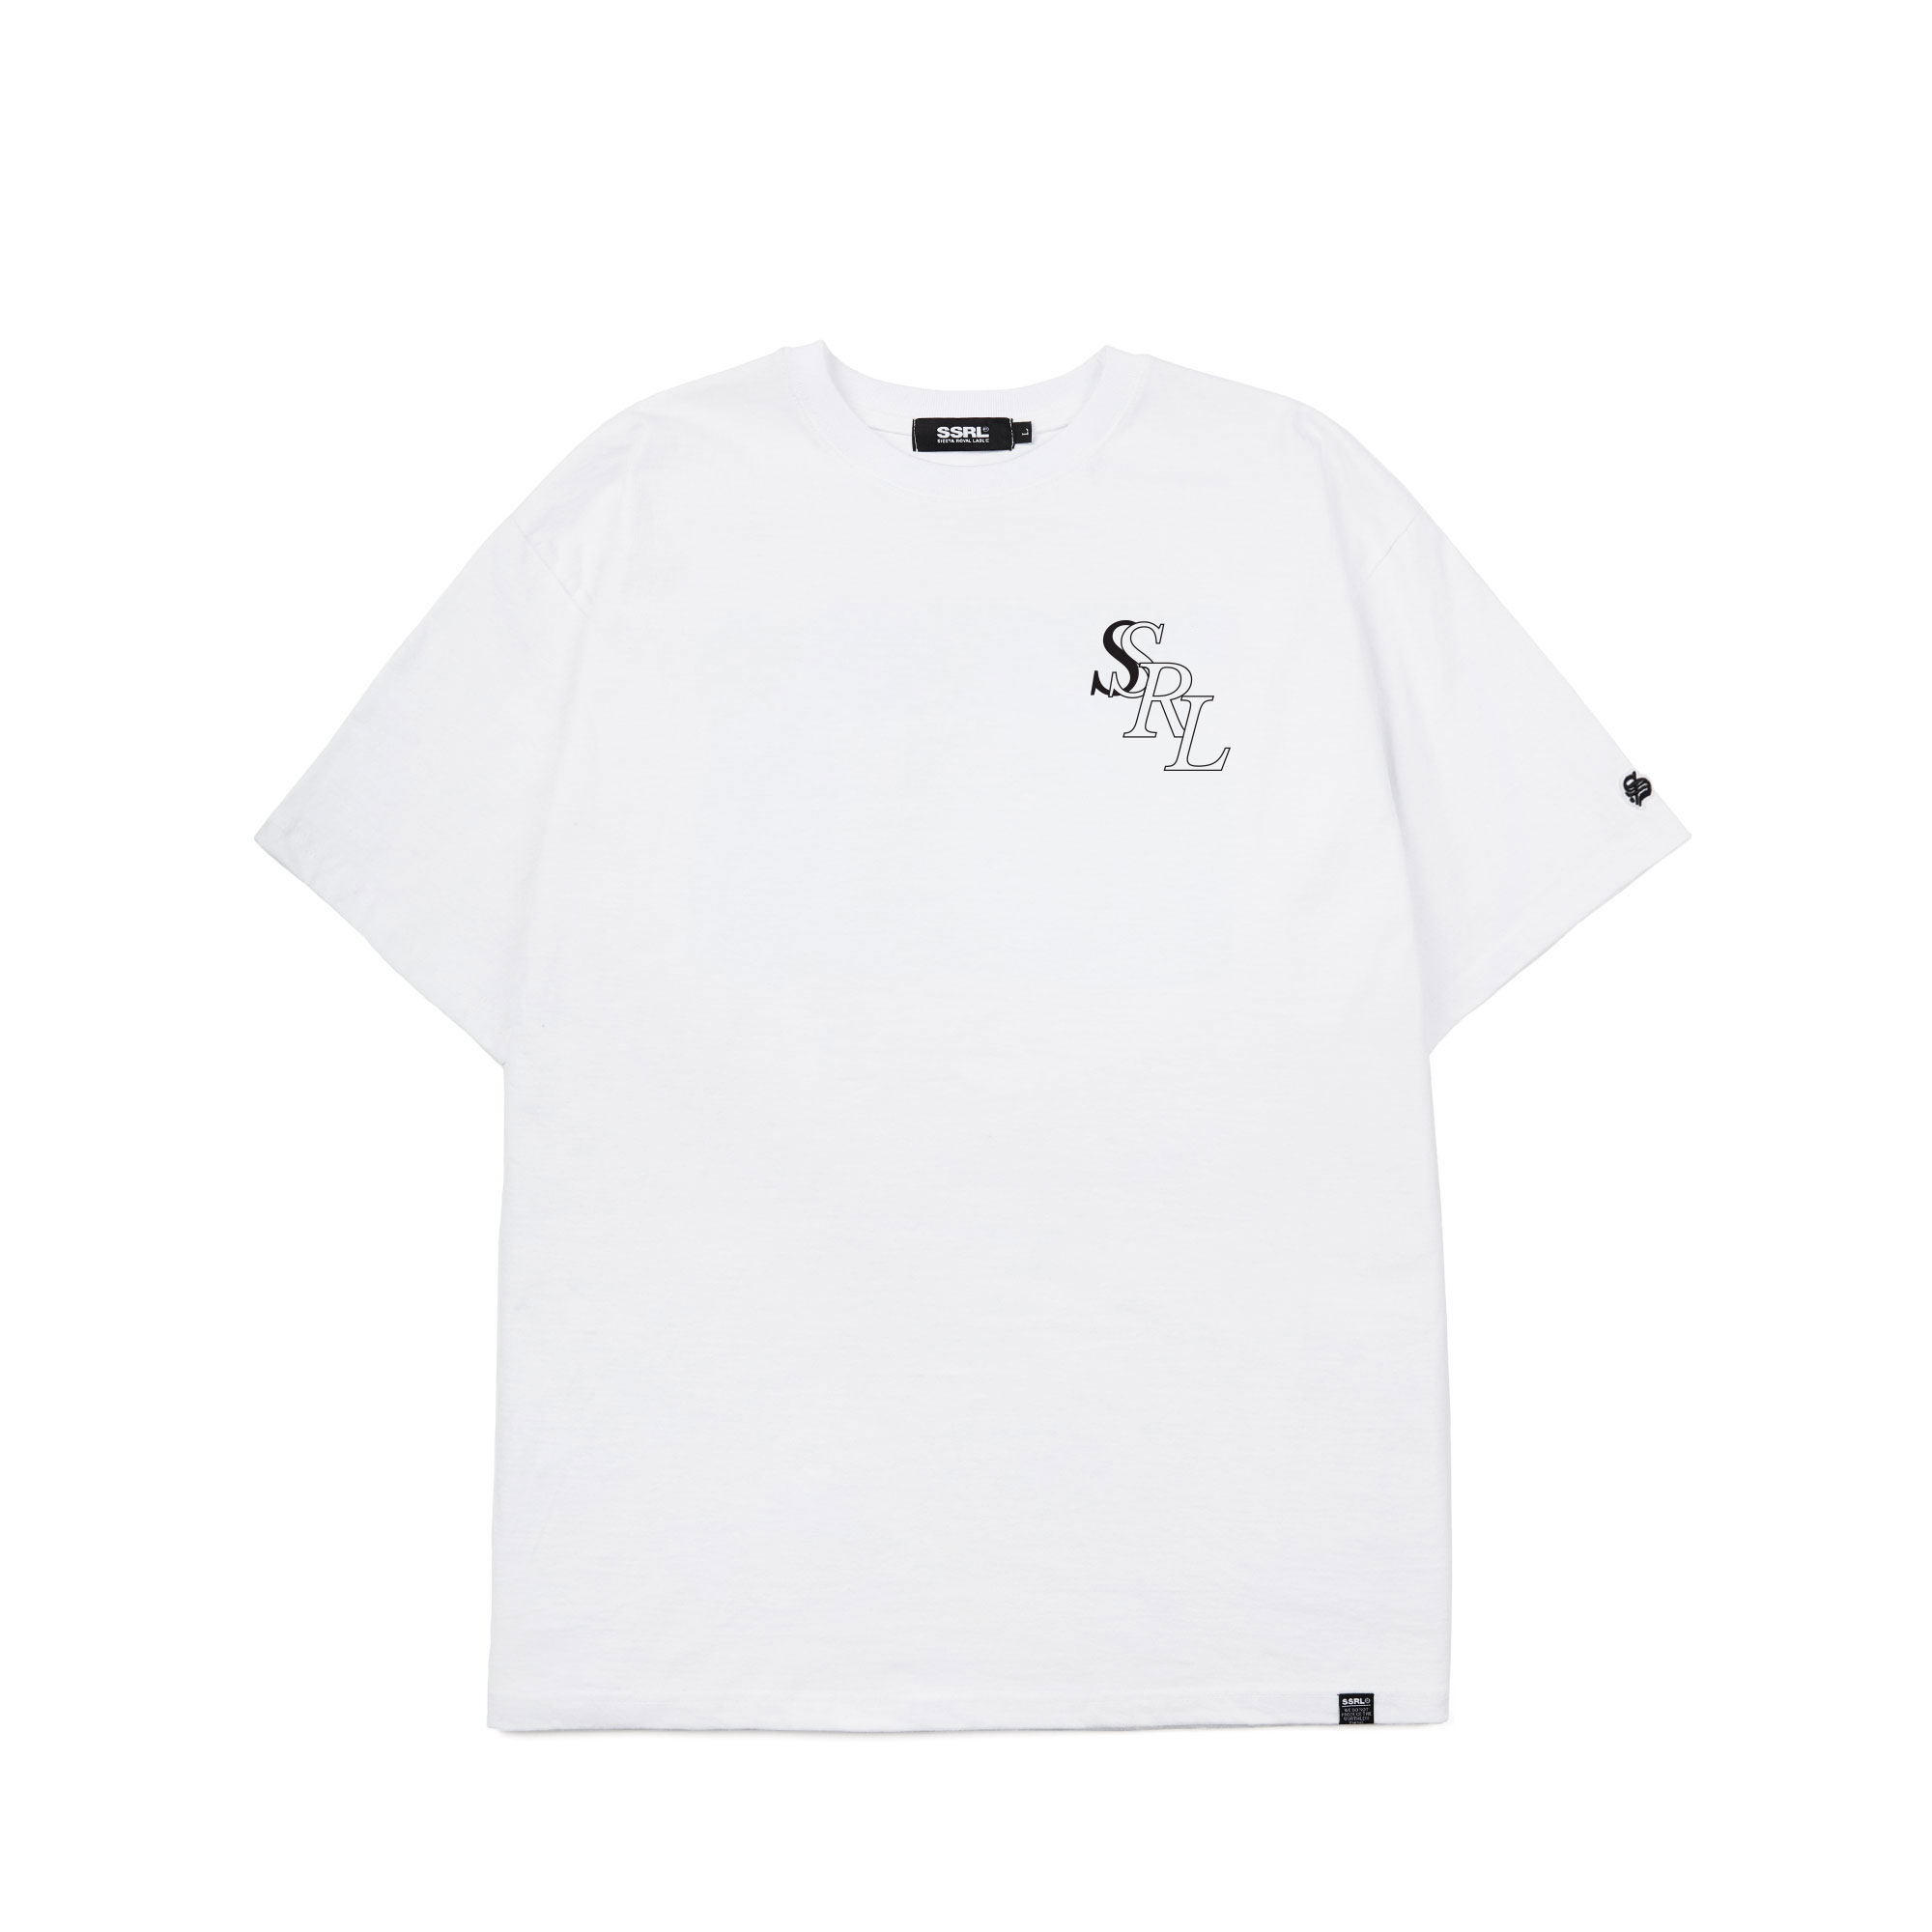 royal tee / white